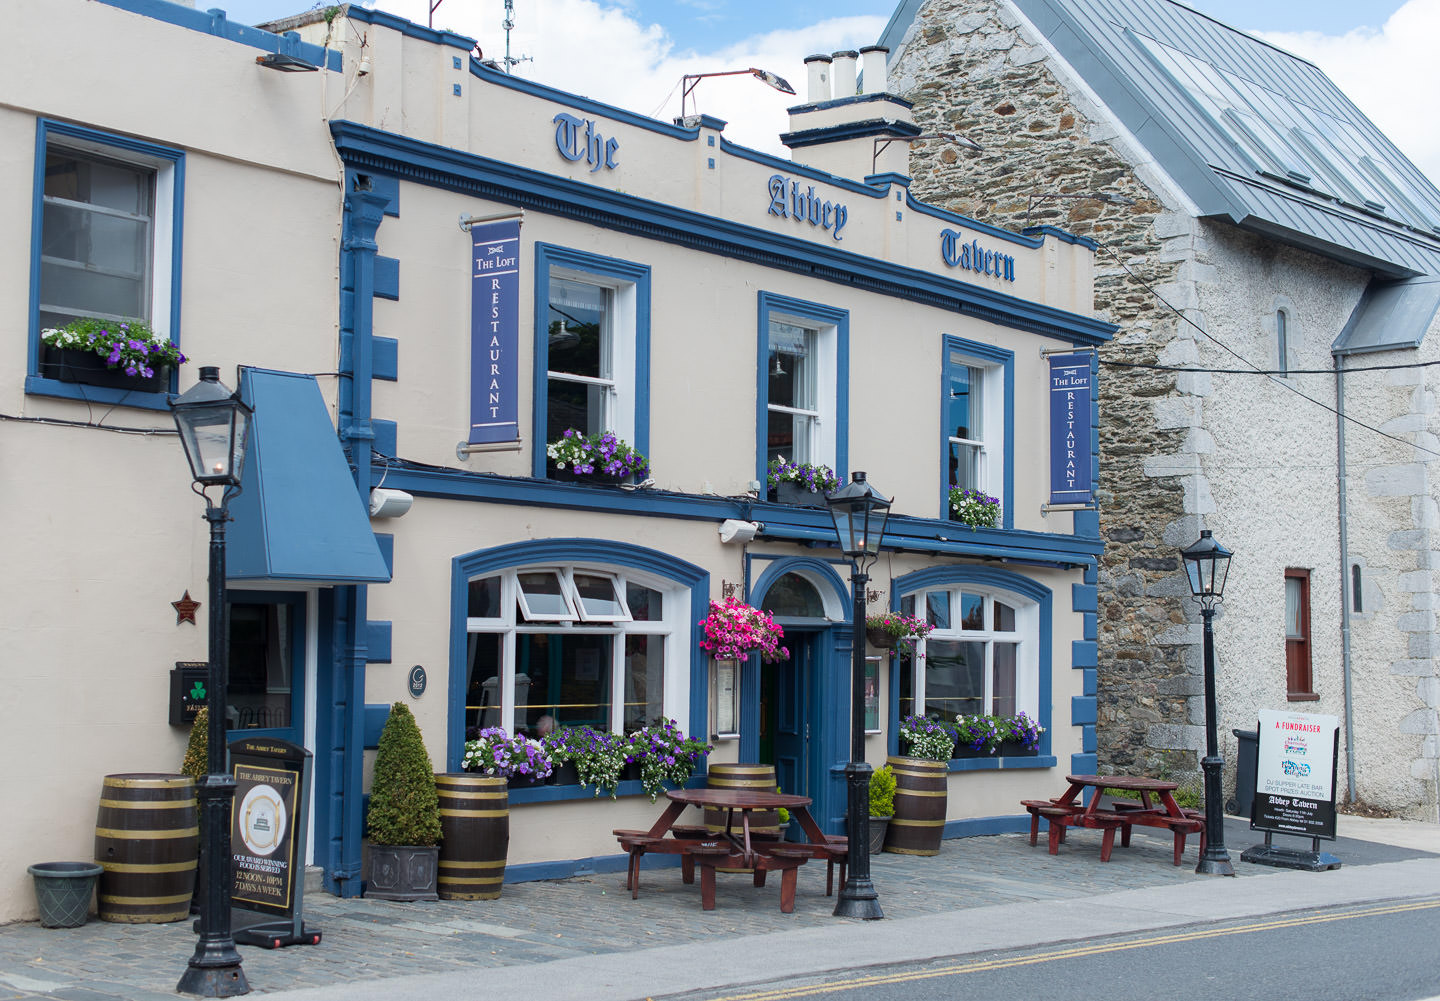 Blog-Mode-And-The-City-Lifestyle-Long-Week-End-Irlande-Howth-17